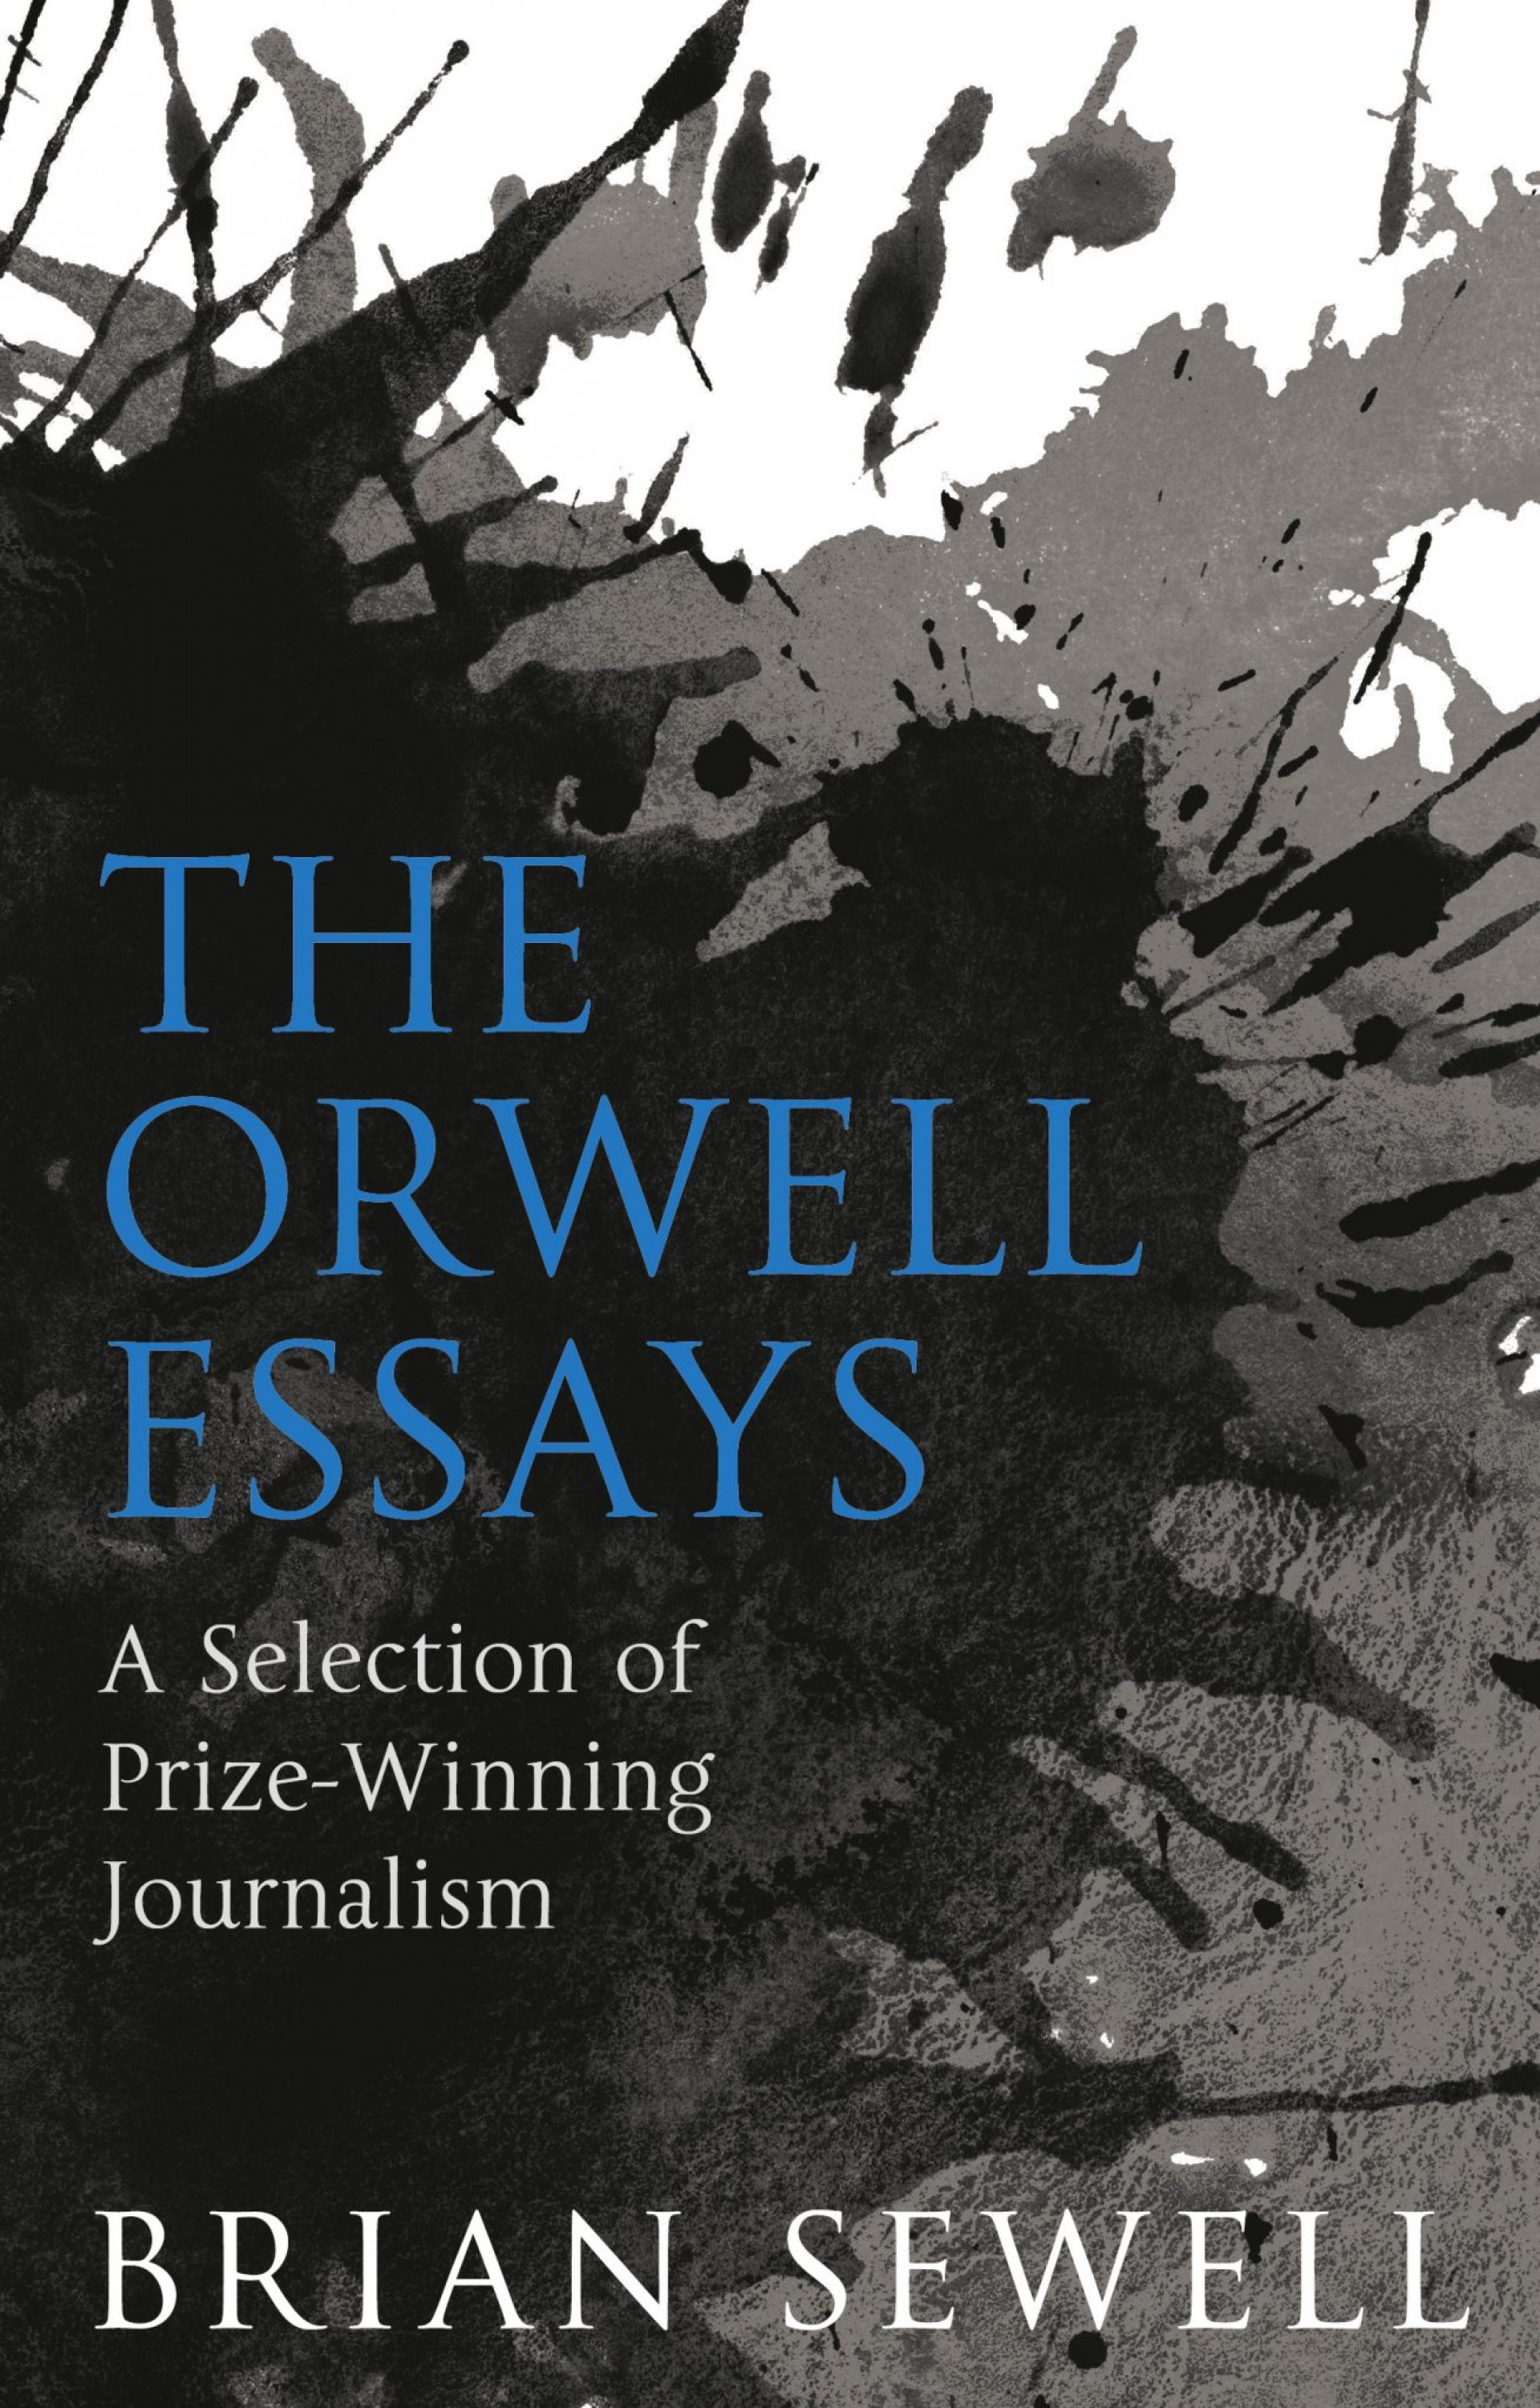 008 Orwell Essays Essay Singular Amazon Pdf Epub 1920